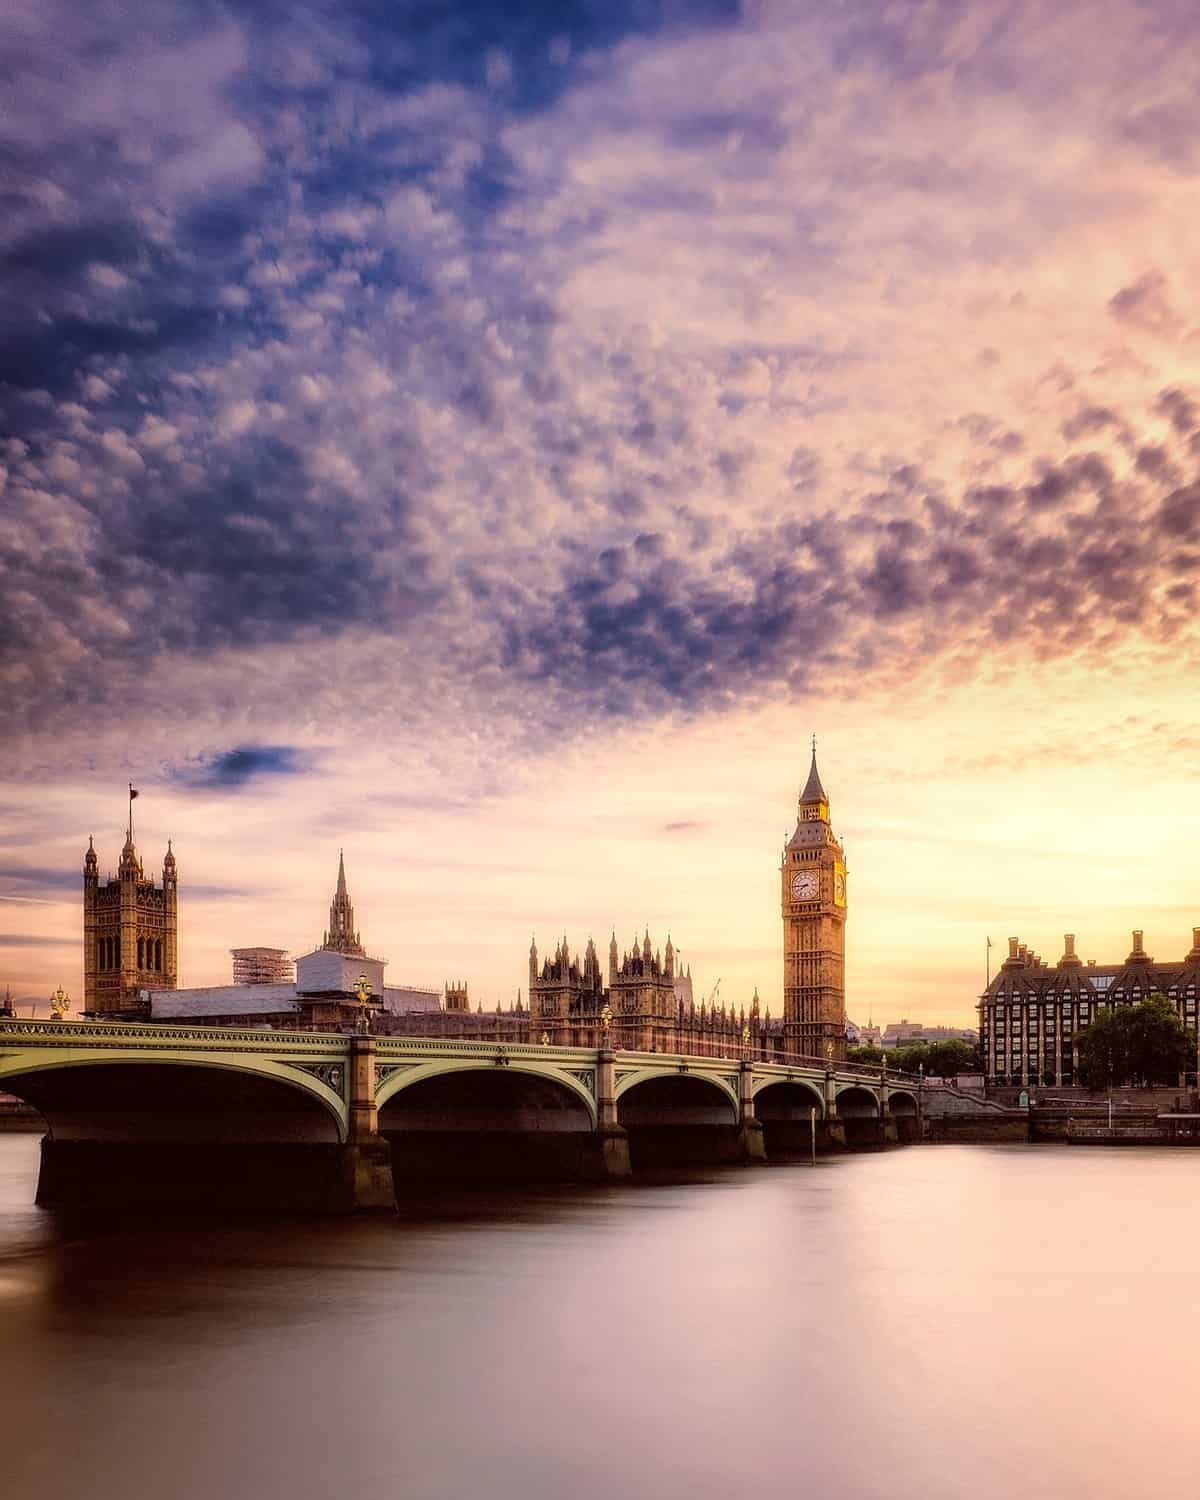 Top attractions in London – Big Ben and The Parliament